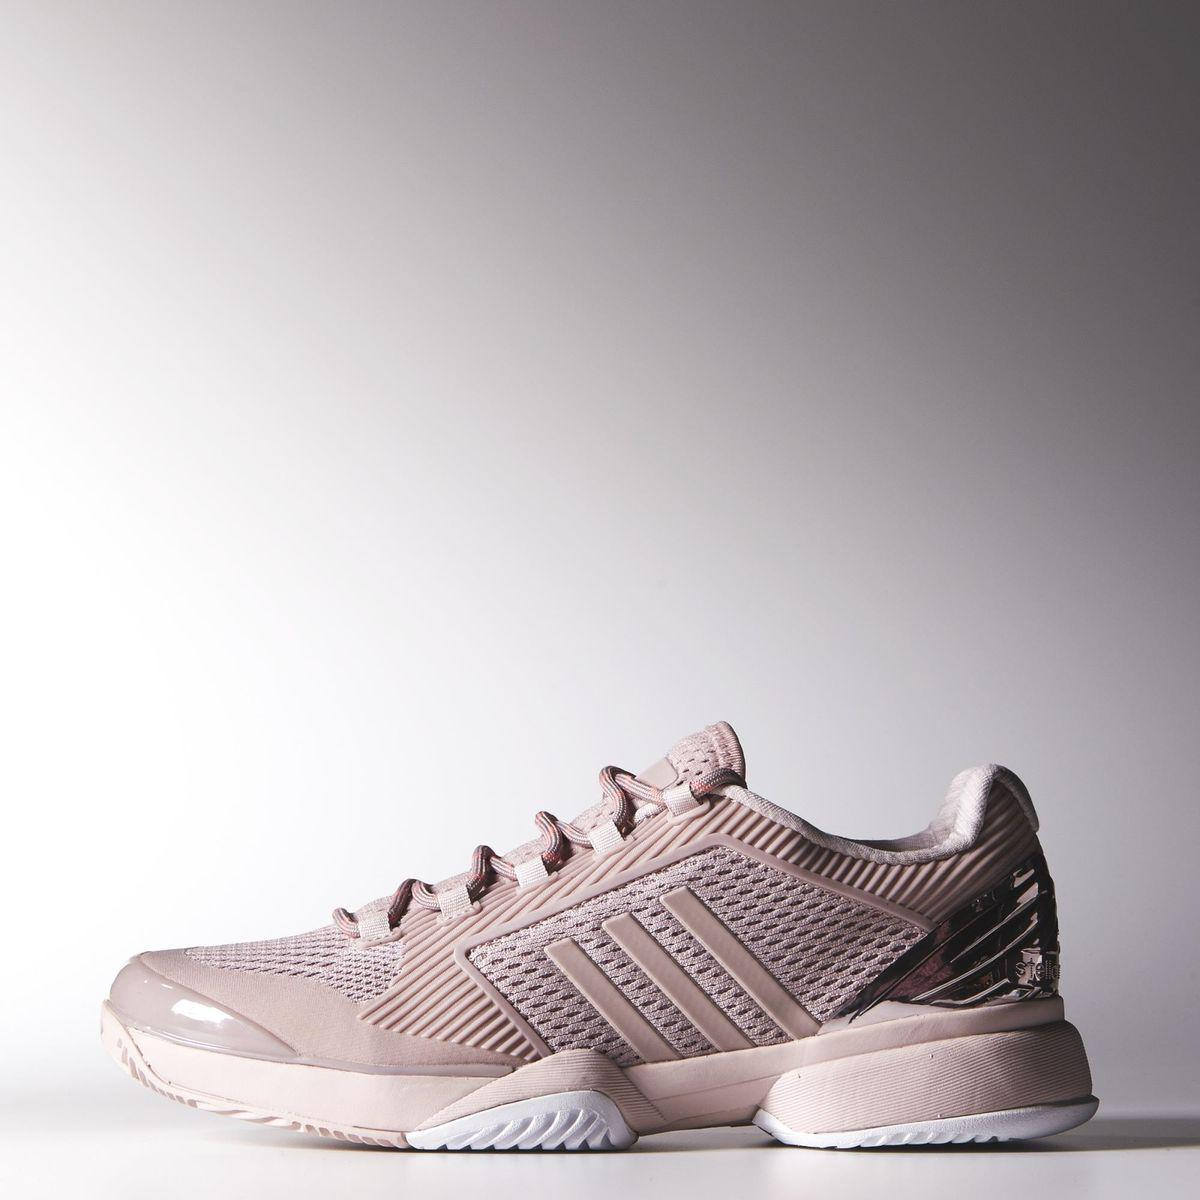 Adidas Womens Stella McCartney Barricade 2015 Tennis Shoes - Light Pink -  Tennisnuts.com d3ffffb19a